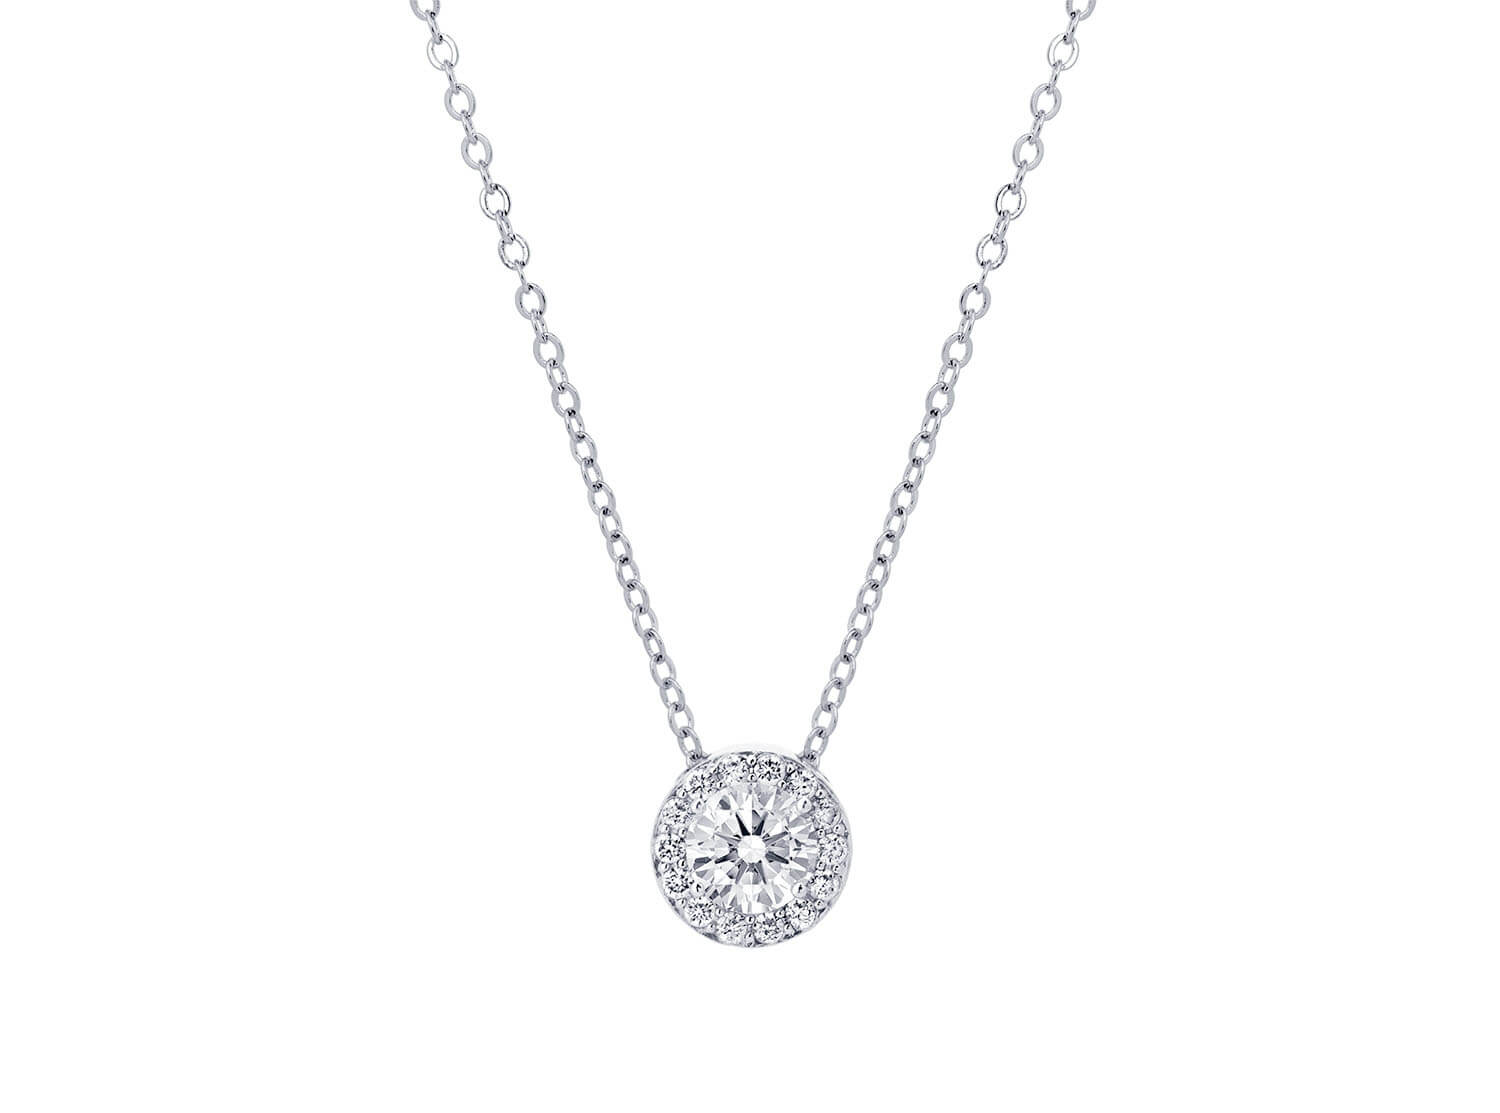 Daily Luxury Necklace I Zilver